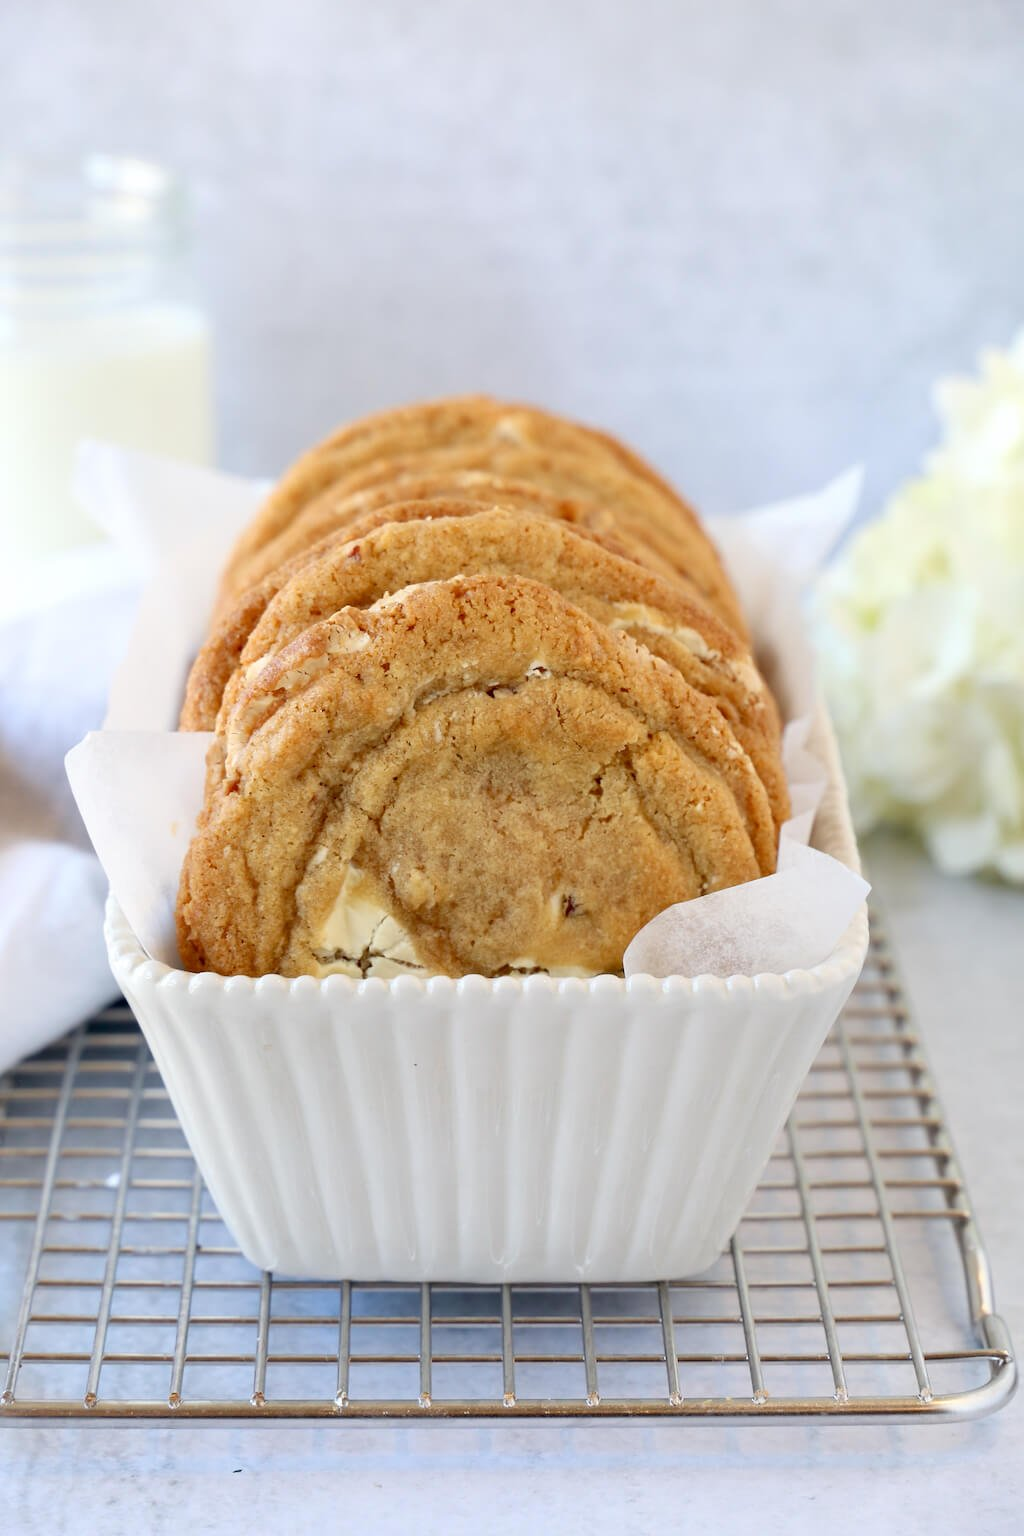 cookies stacked in a white dish